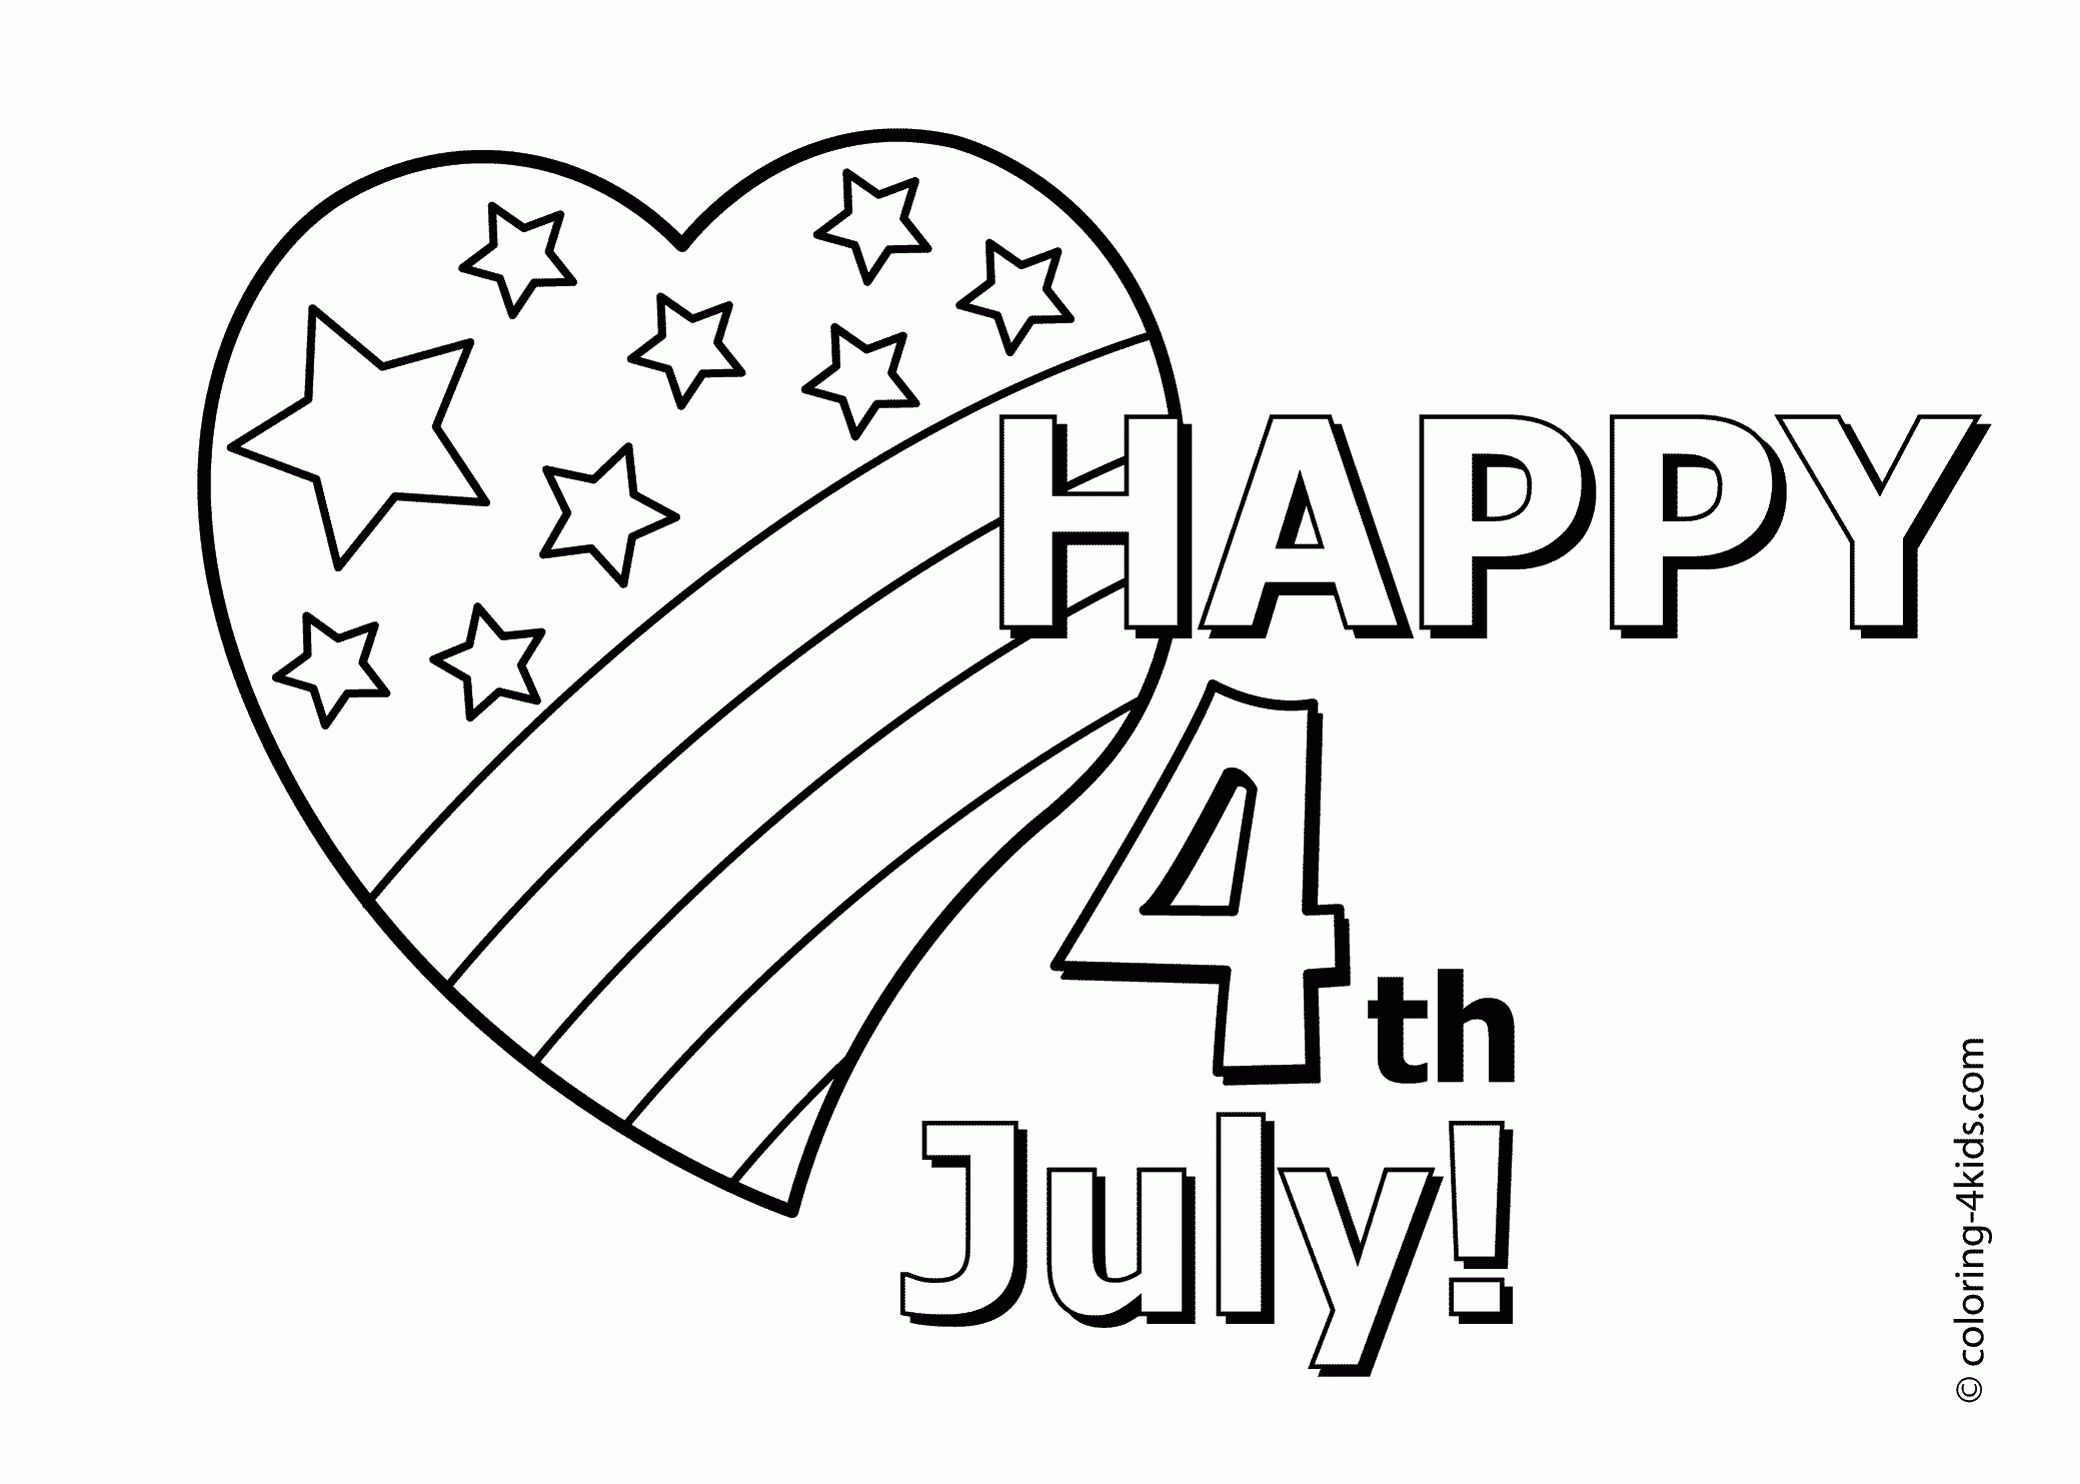 18 Printable Independence Day Coloring Pages - Holiday Vault